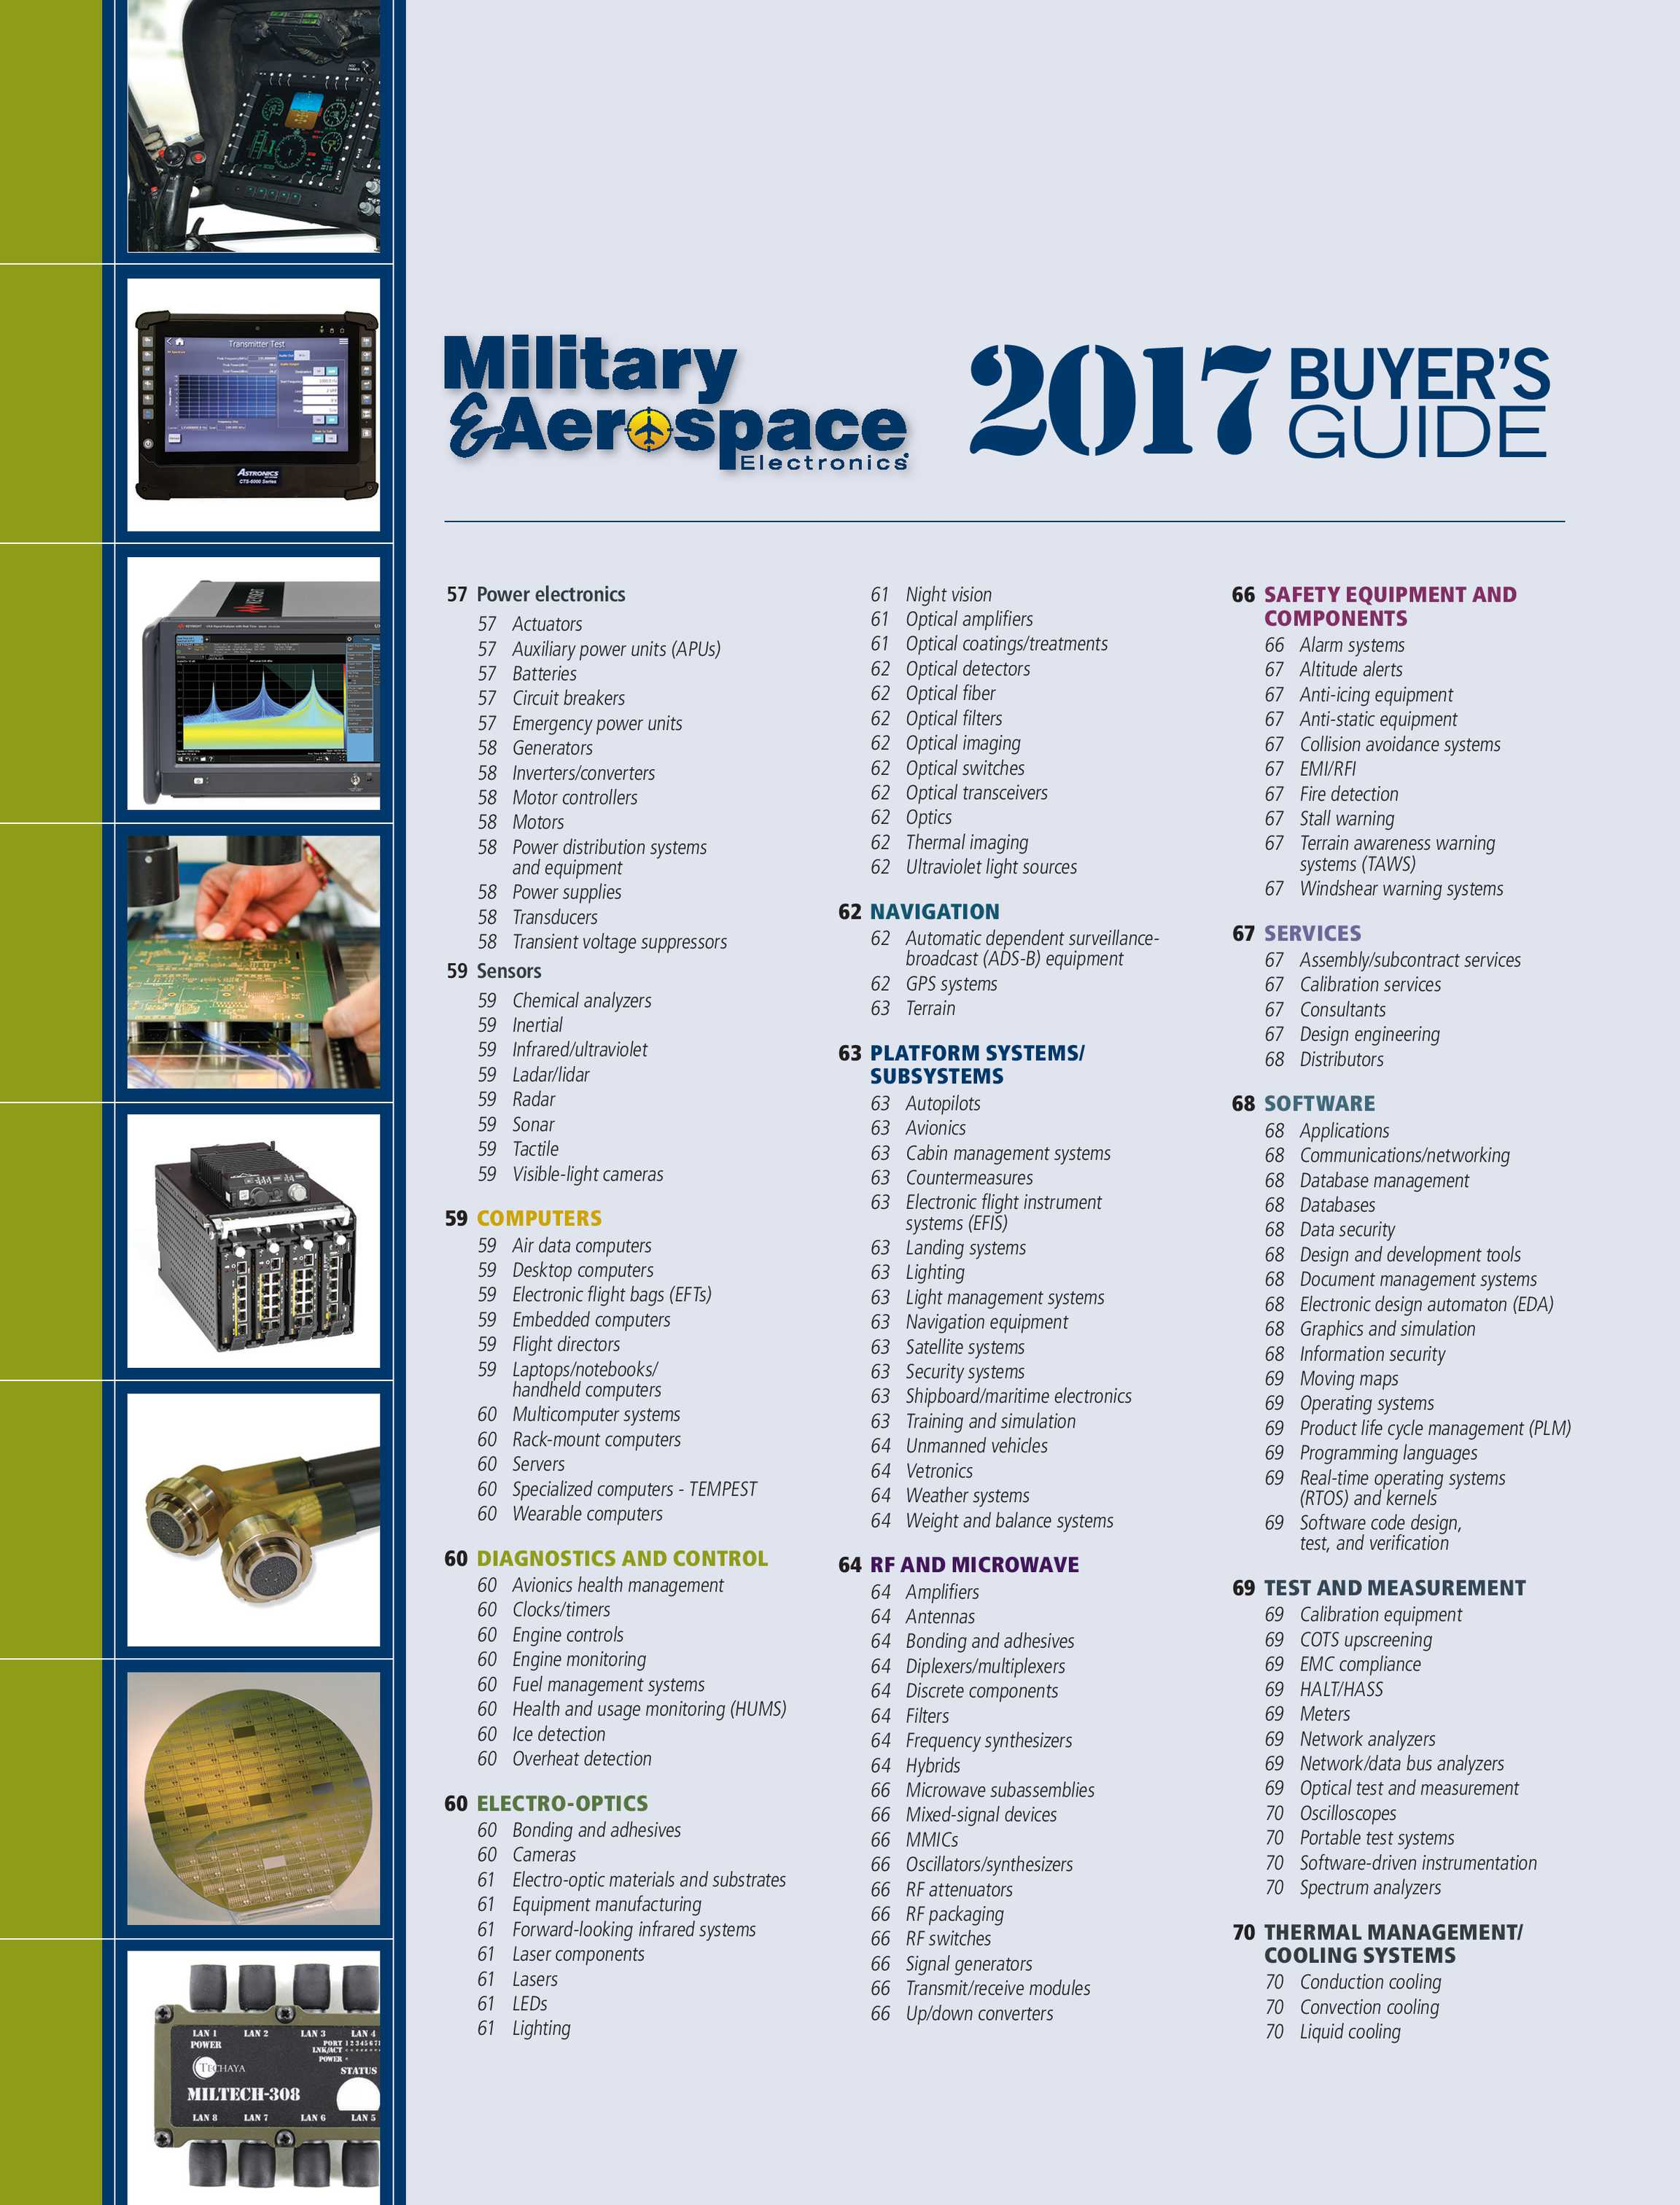 Military Aerospace Electronics 2017 Mae Buyers Guide Page 44 Electronic Circuit Simulation